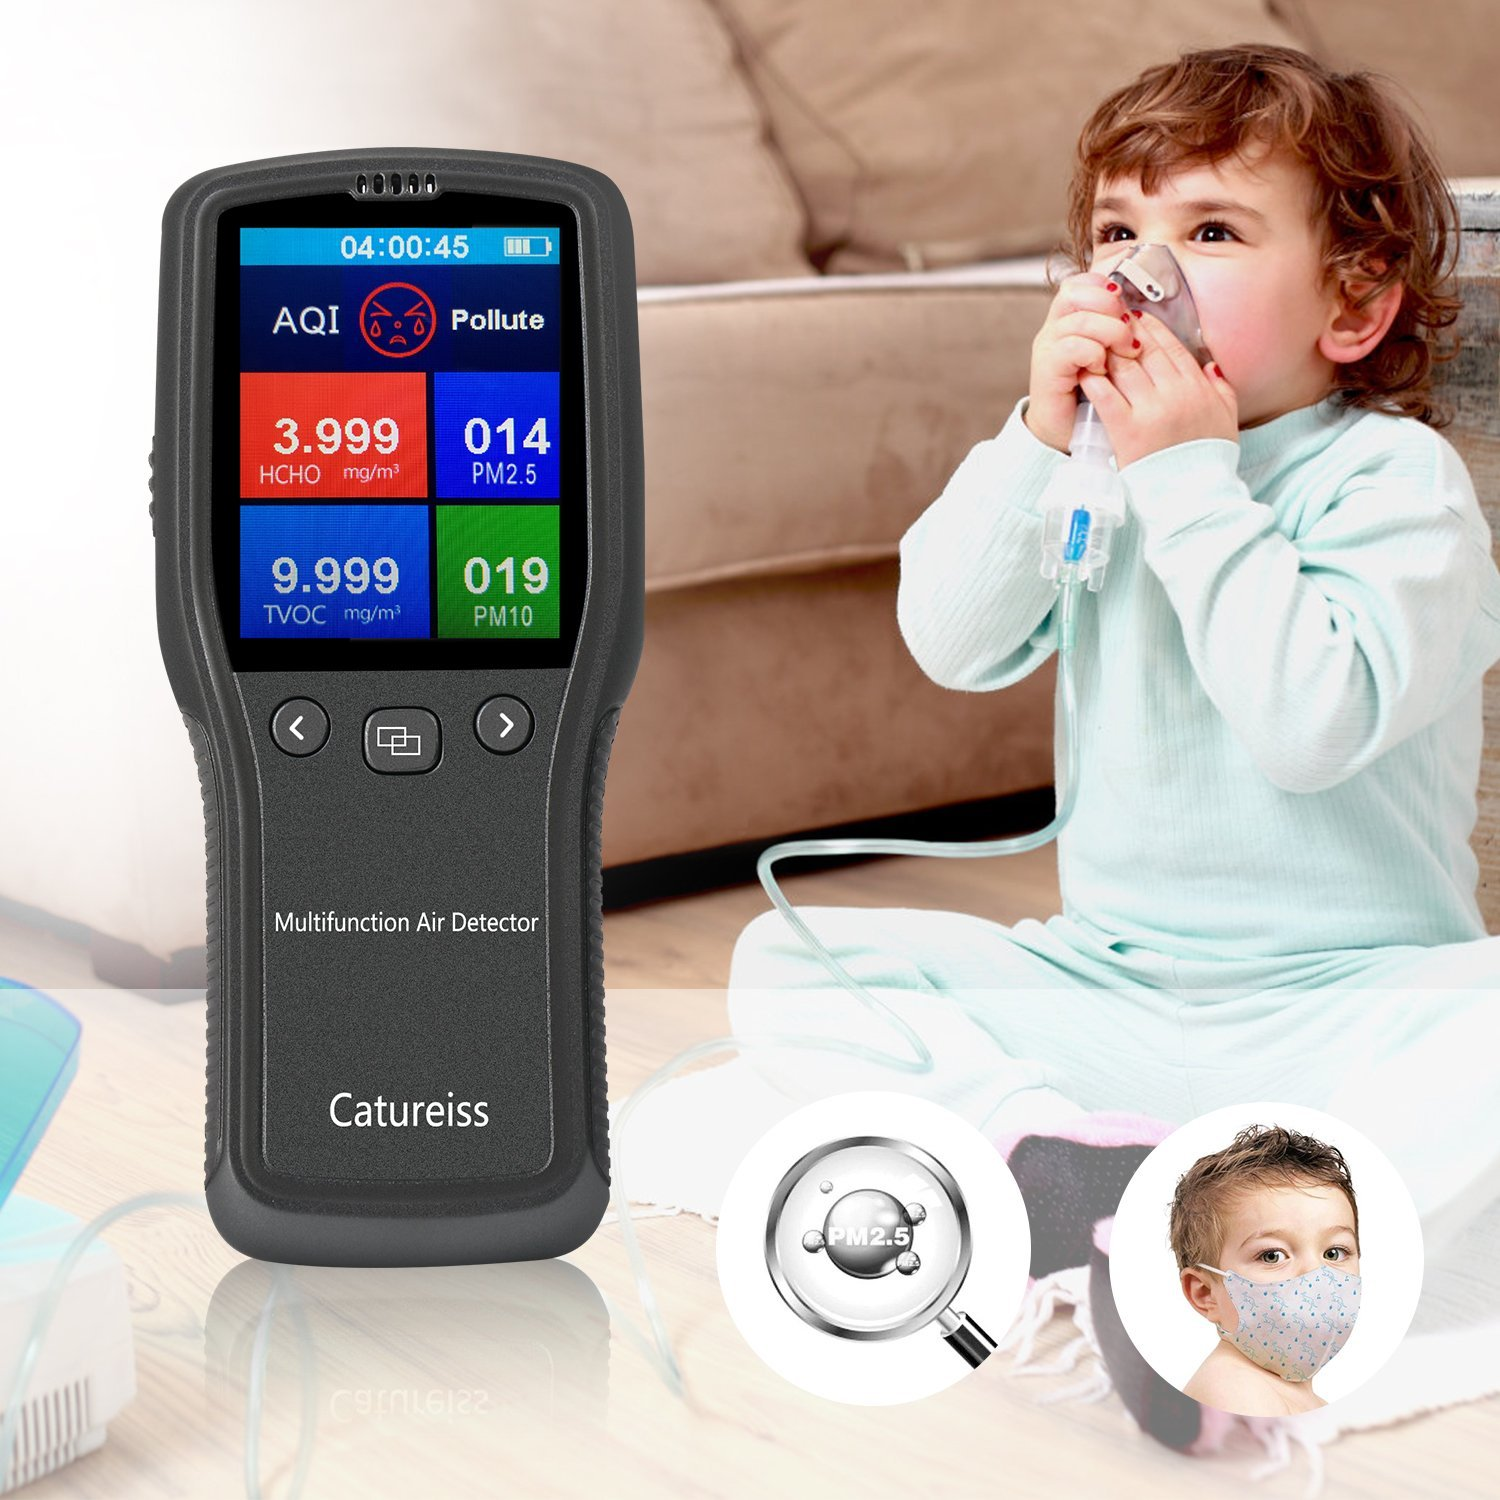 // PM2.5 // PM10 // TVOC Monitor Multi-Functional Formaldehyde Outdoor Detector Air Quality Tester HCHO Vehicle and Other Environmental Air Detection by FUELUS Suitable for Indoor